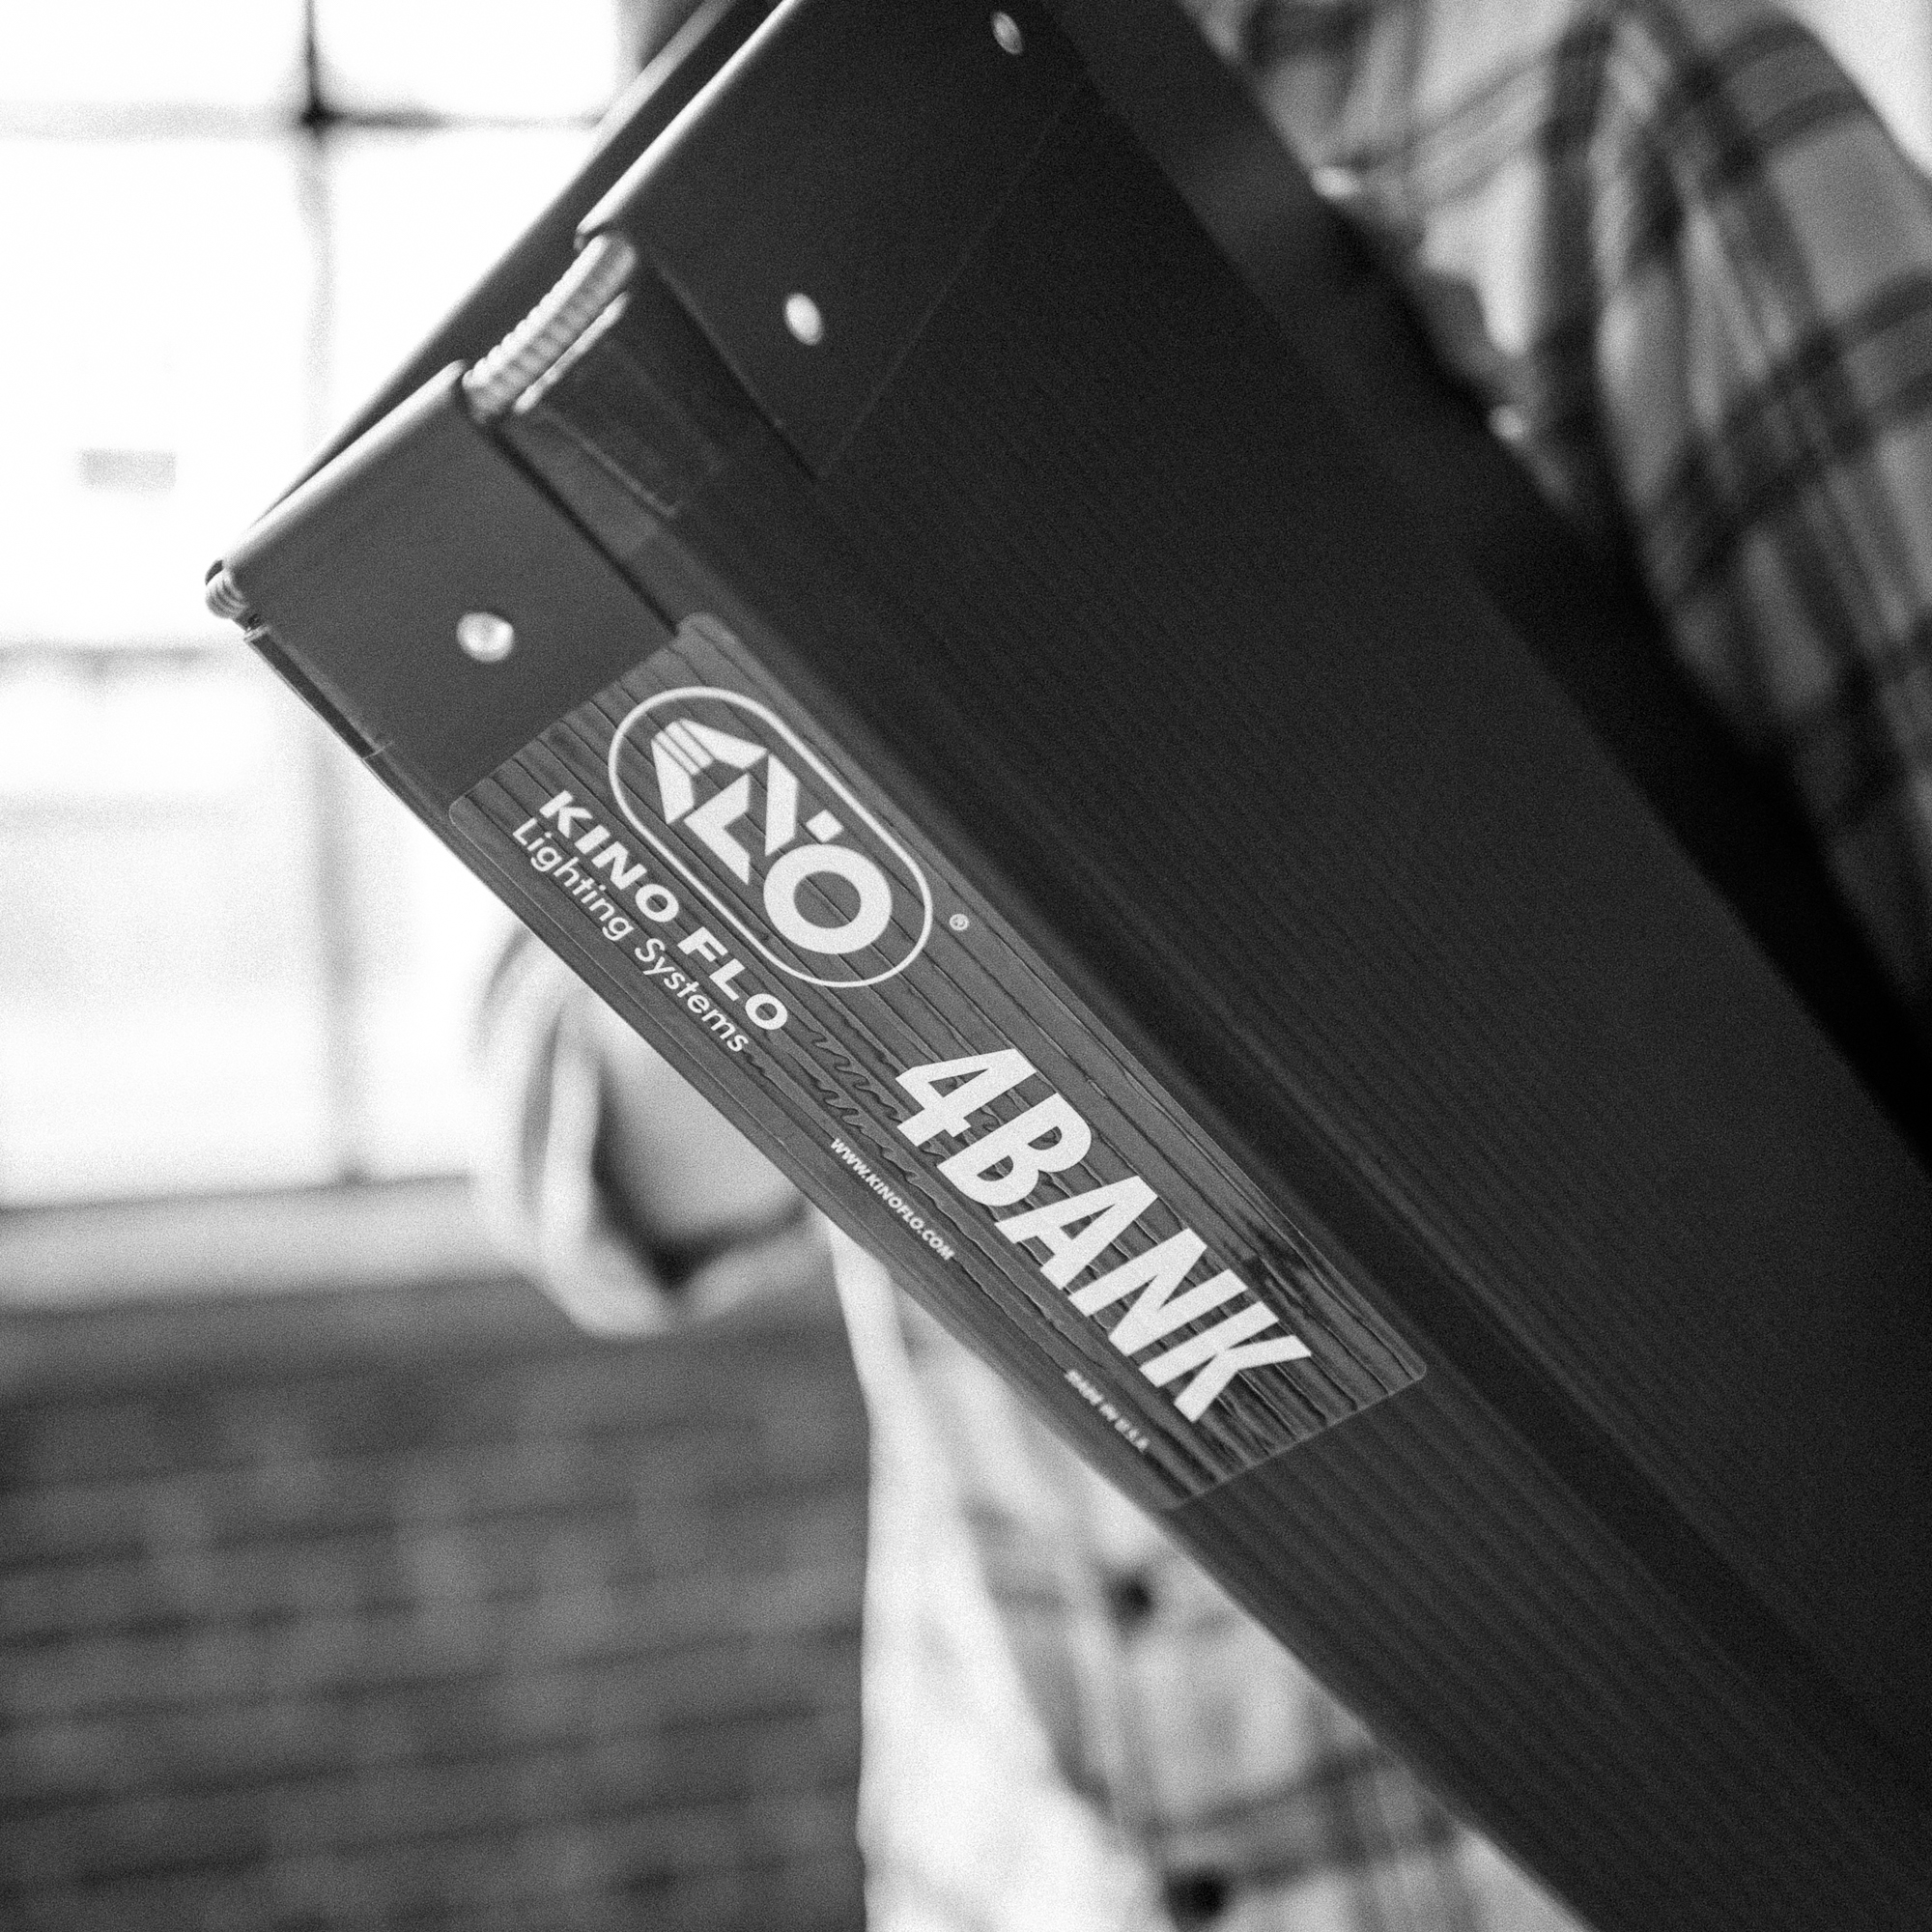 KinoFlo 4' 4 Bank - Single   80/day, 320/week, 40/day in studio   Single 4' 4 bank Kino fixtures with daylight and tungsten bulbs. Comes in soft case.  Switch to DMX ballast for an additional 15/day